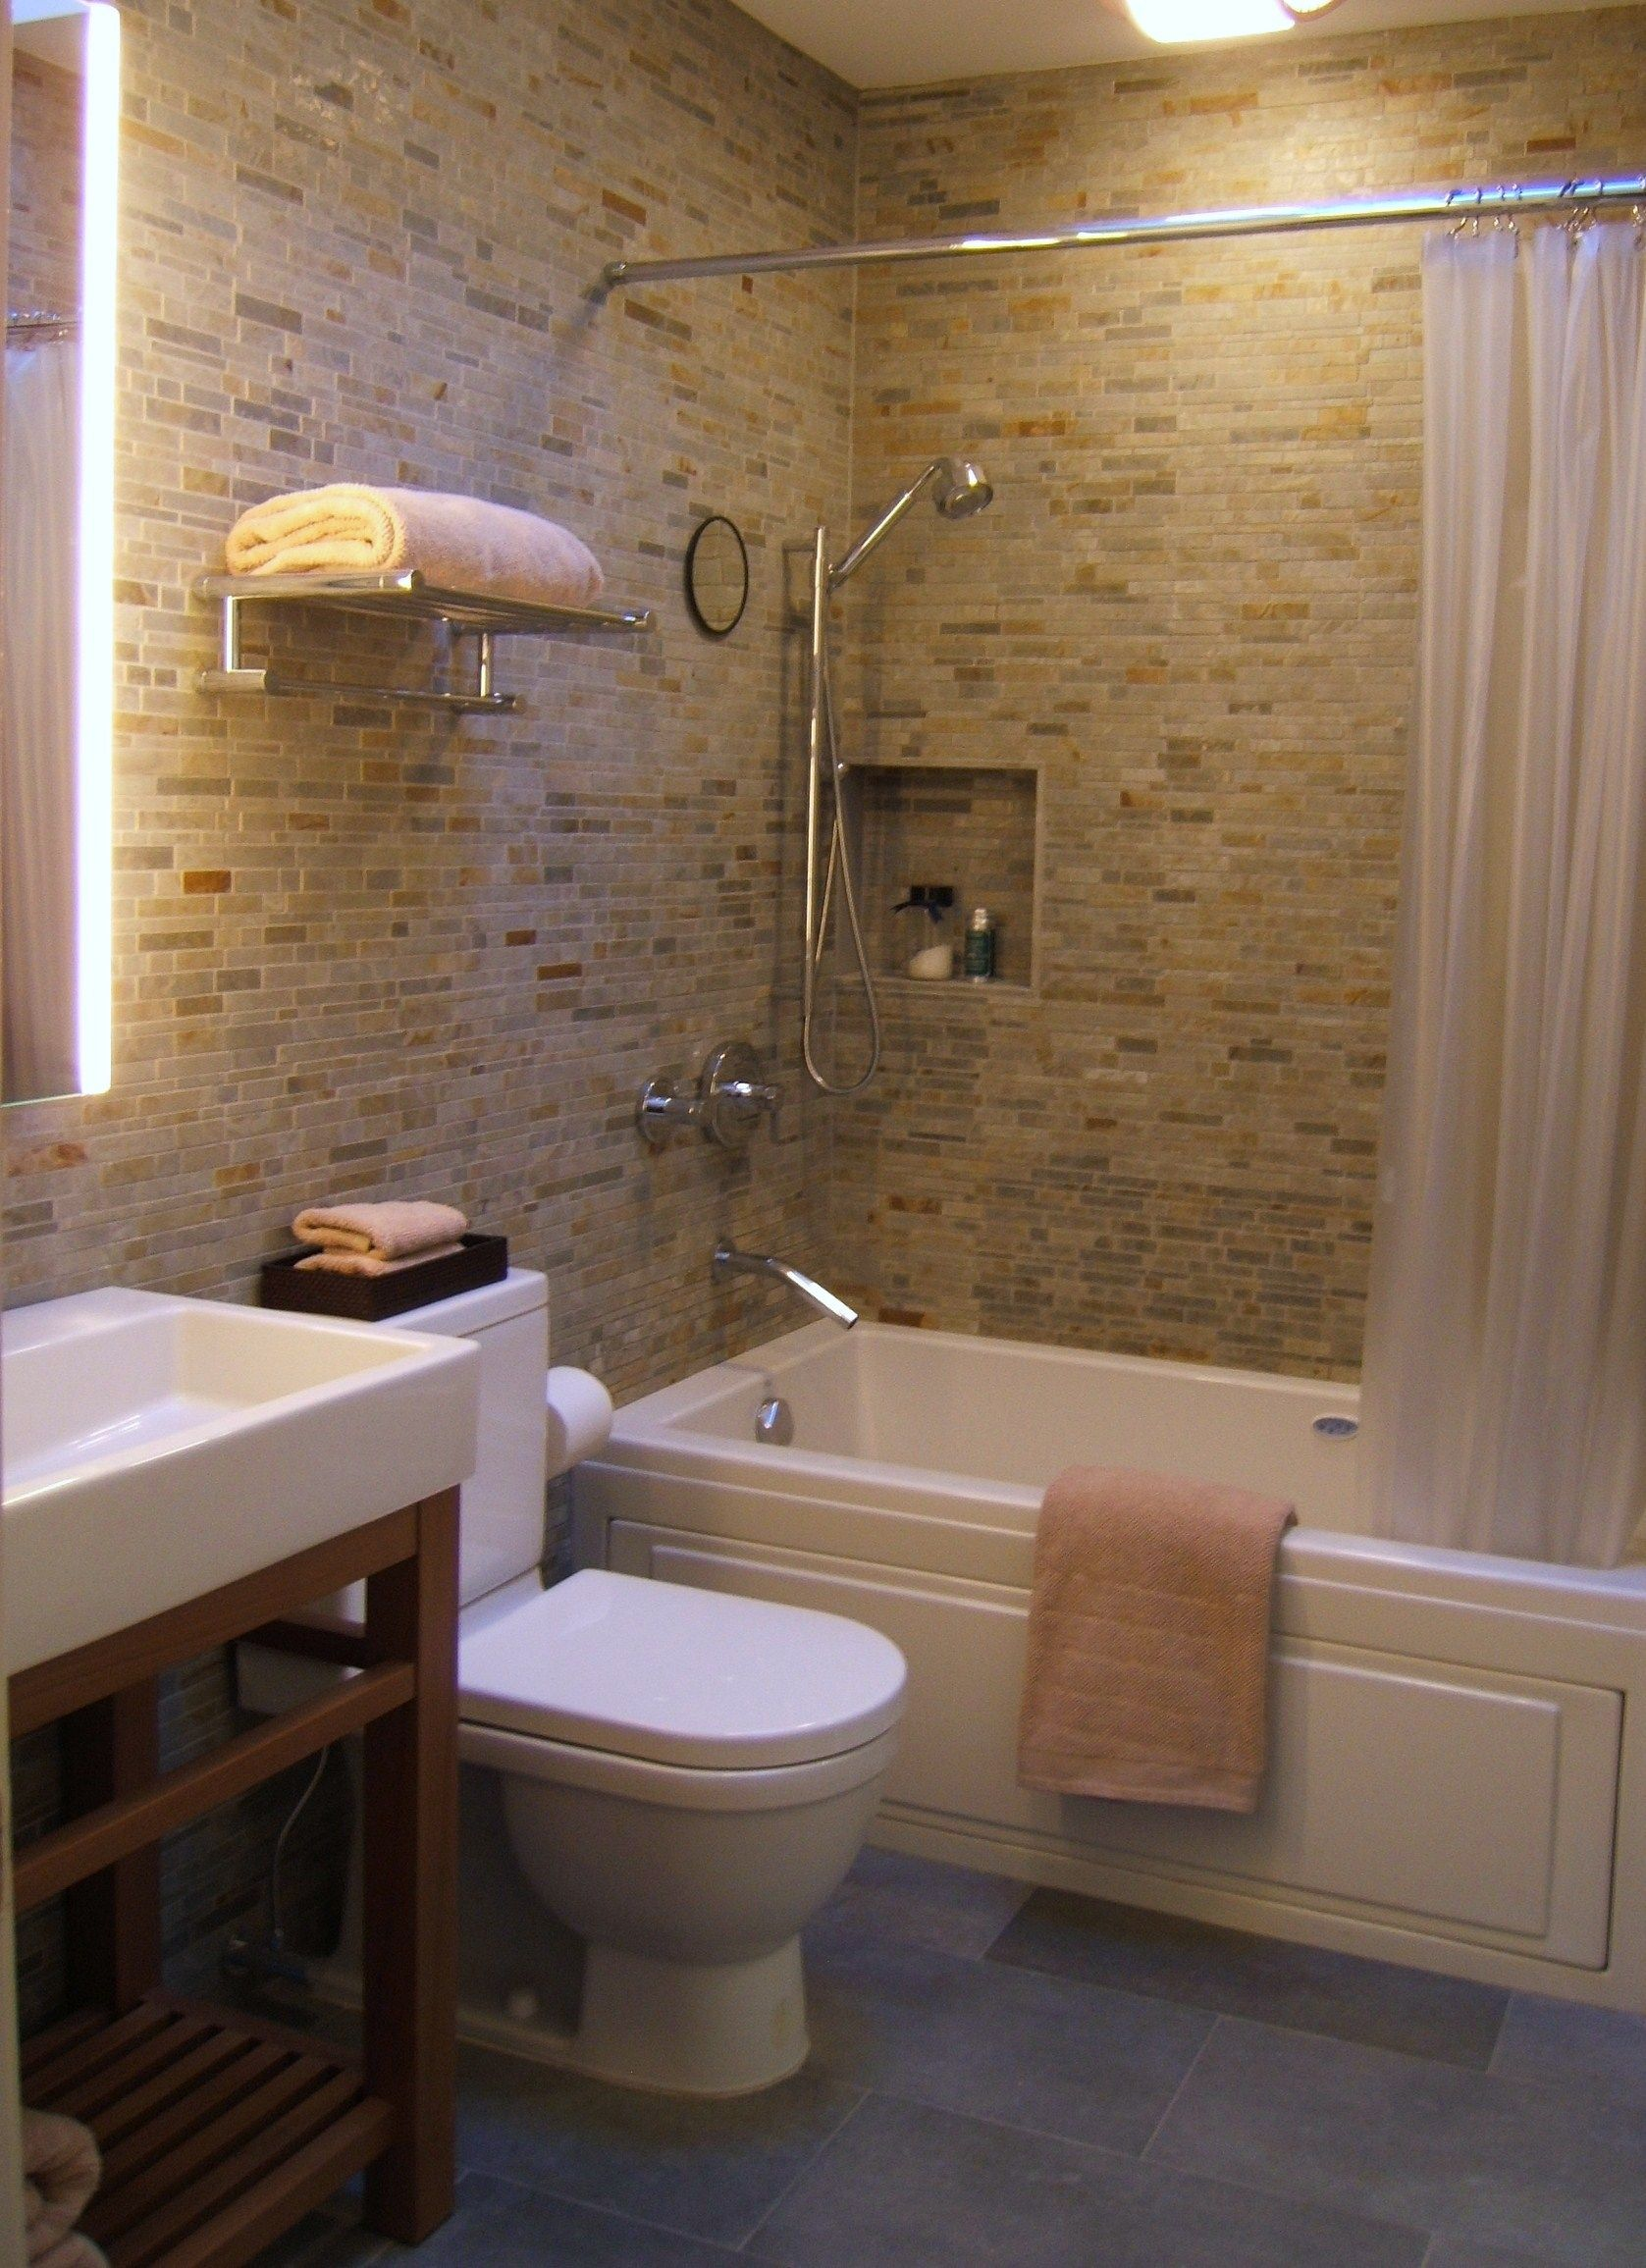 Small bathroom designs south africa small bath for Micro bathroom ideas